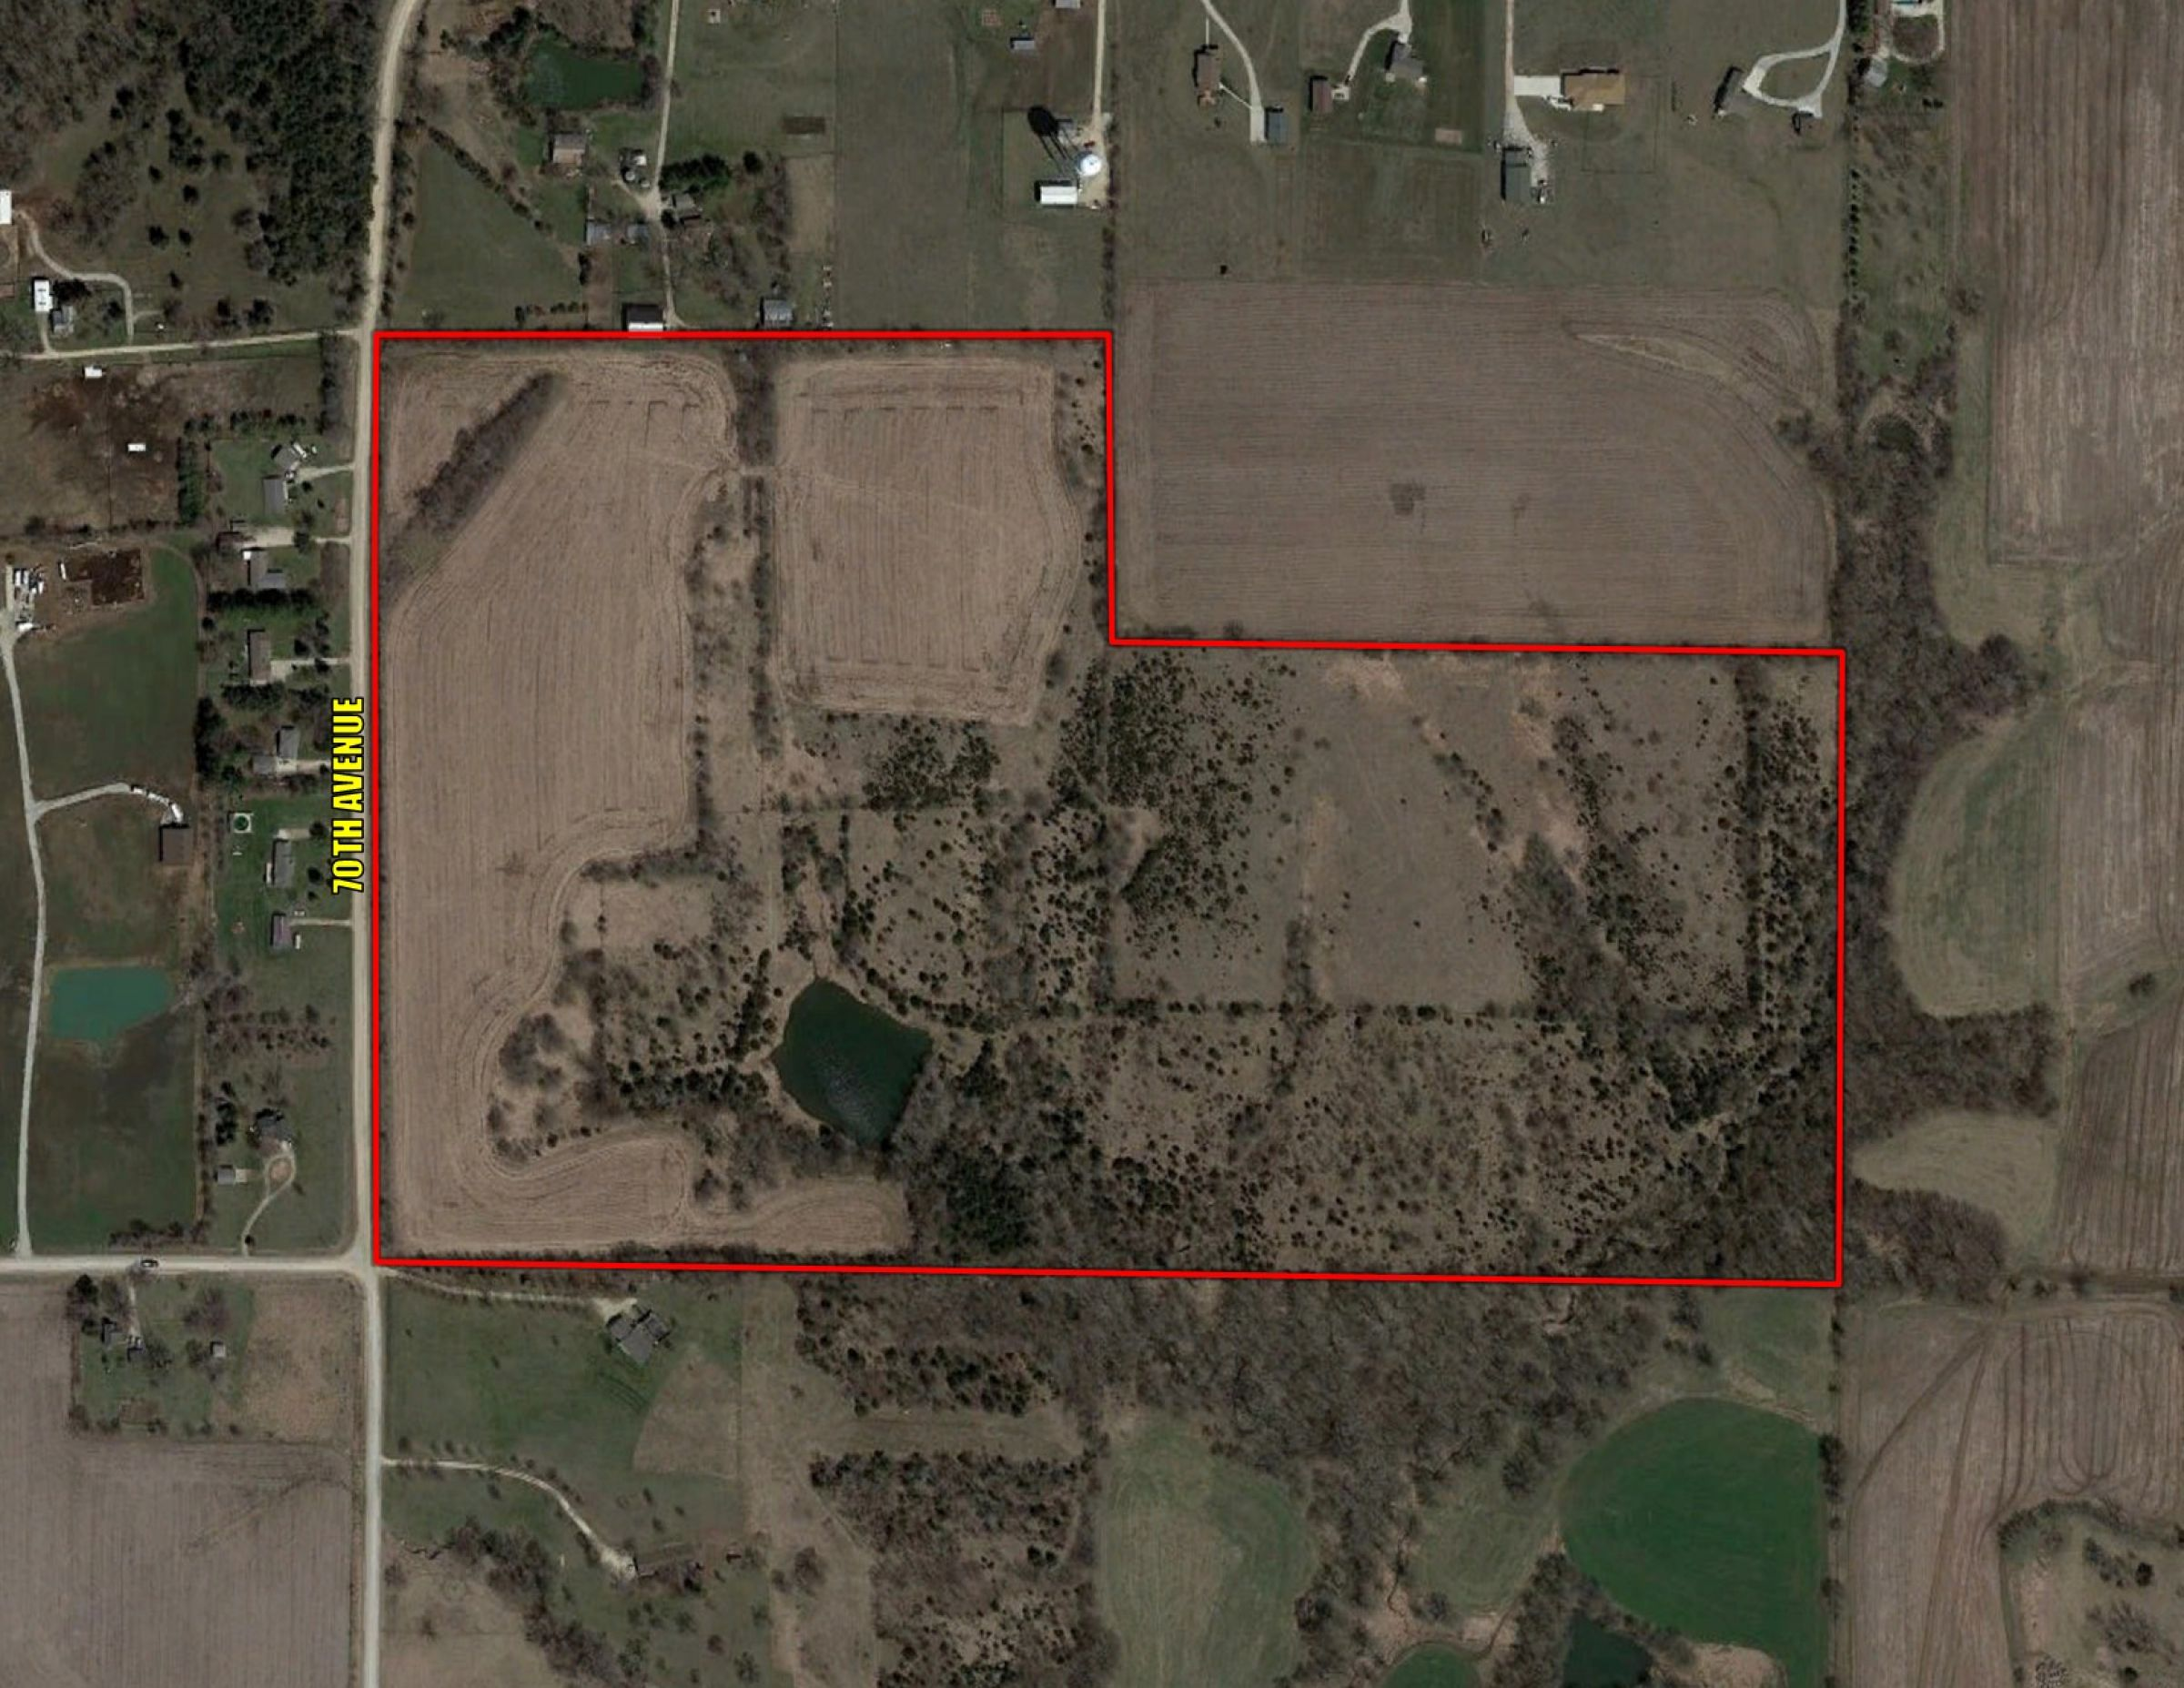 auctions-warren-county-iowa-84-acres-listing-number-15156-3-2020-09-02-050208.jpg